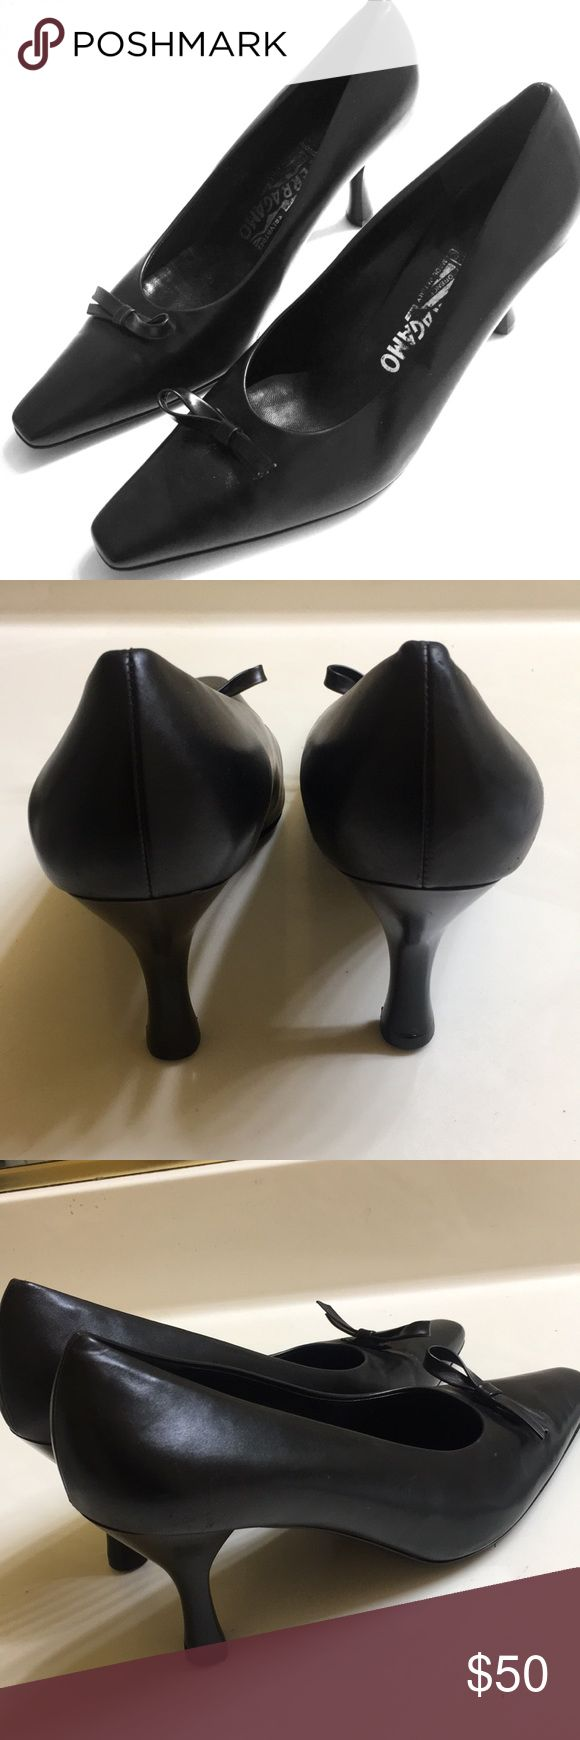 SALVATORE FERRAGAMO  BLACK HEELS Black Salvatore FERRAGAMO Black Heels with a small bow in the front practically new as you can tell by the pictures..Size 9 but fit more like an 8. Salvatore Ferragamo Shoes Heels